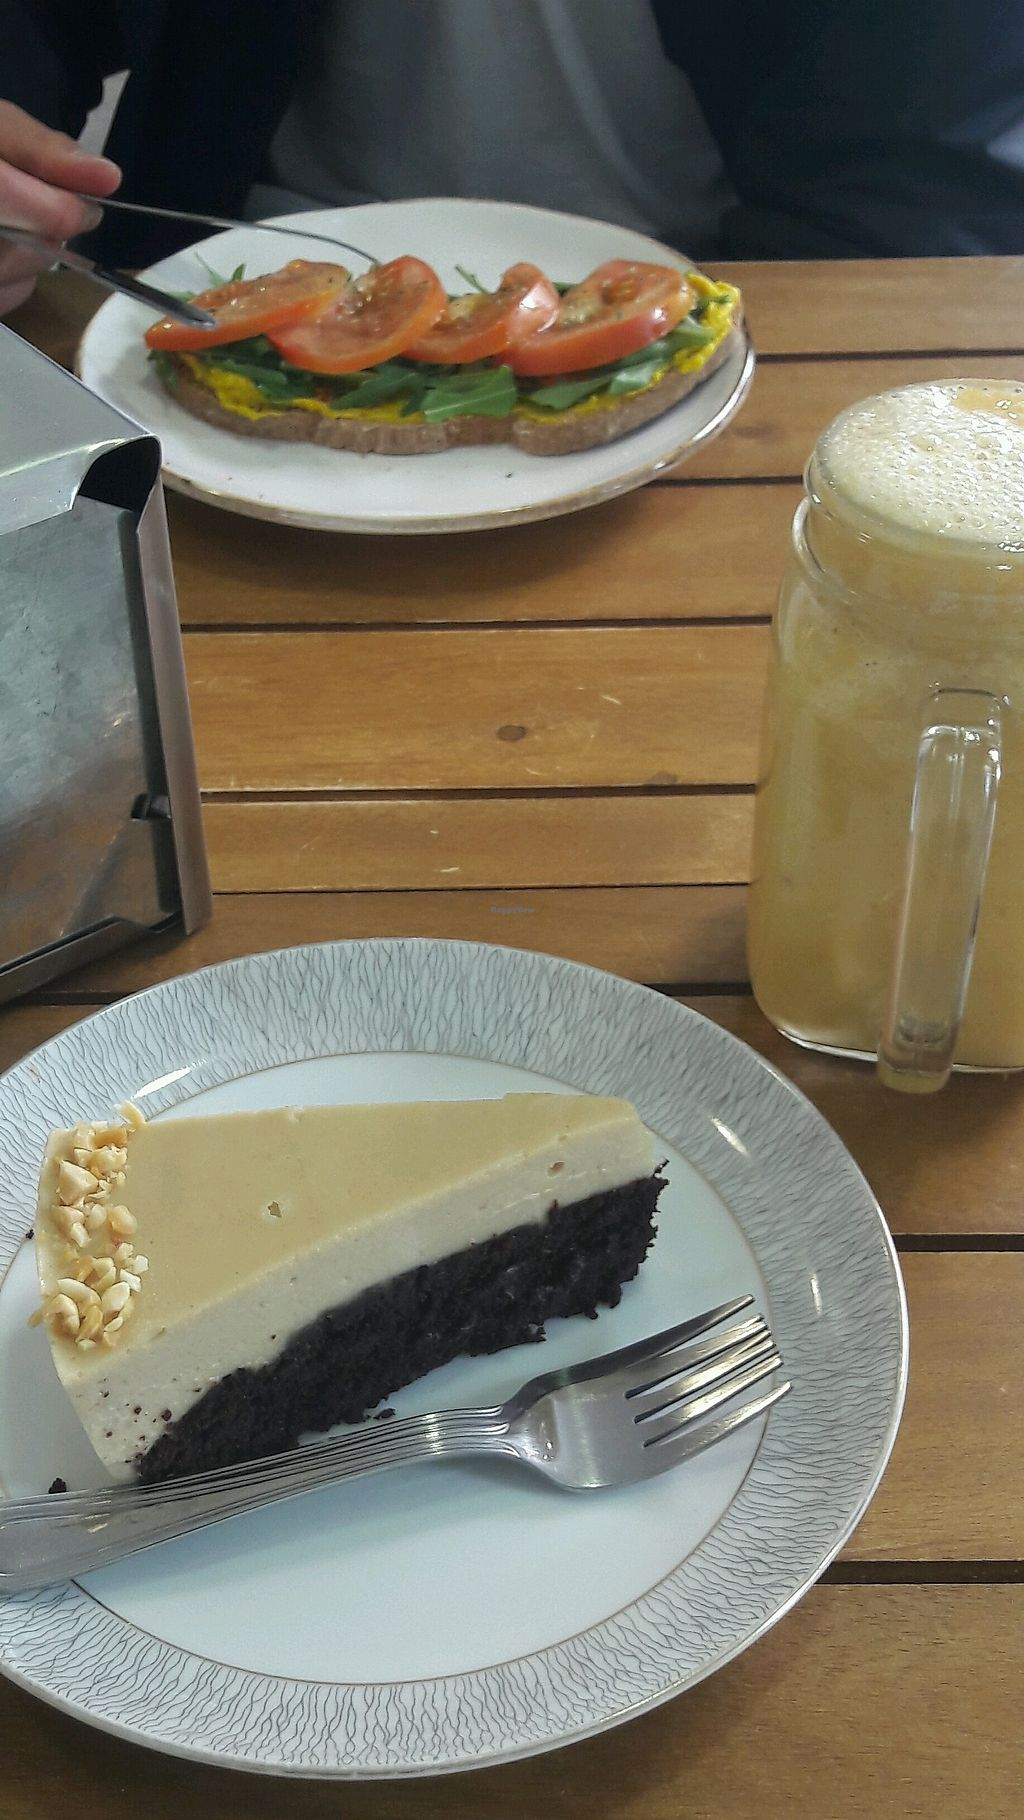 """Photo of Sweet Paradise  by <a href=""""/members/profile/ManuelaEden"""">ManuelaEden</a> <br/>Brownie peanut cake and Hummus sandwich <br/> February 5, 2018  - <a href='/contact/abuse/image/80328/355259'>Report</a>"""